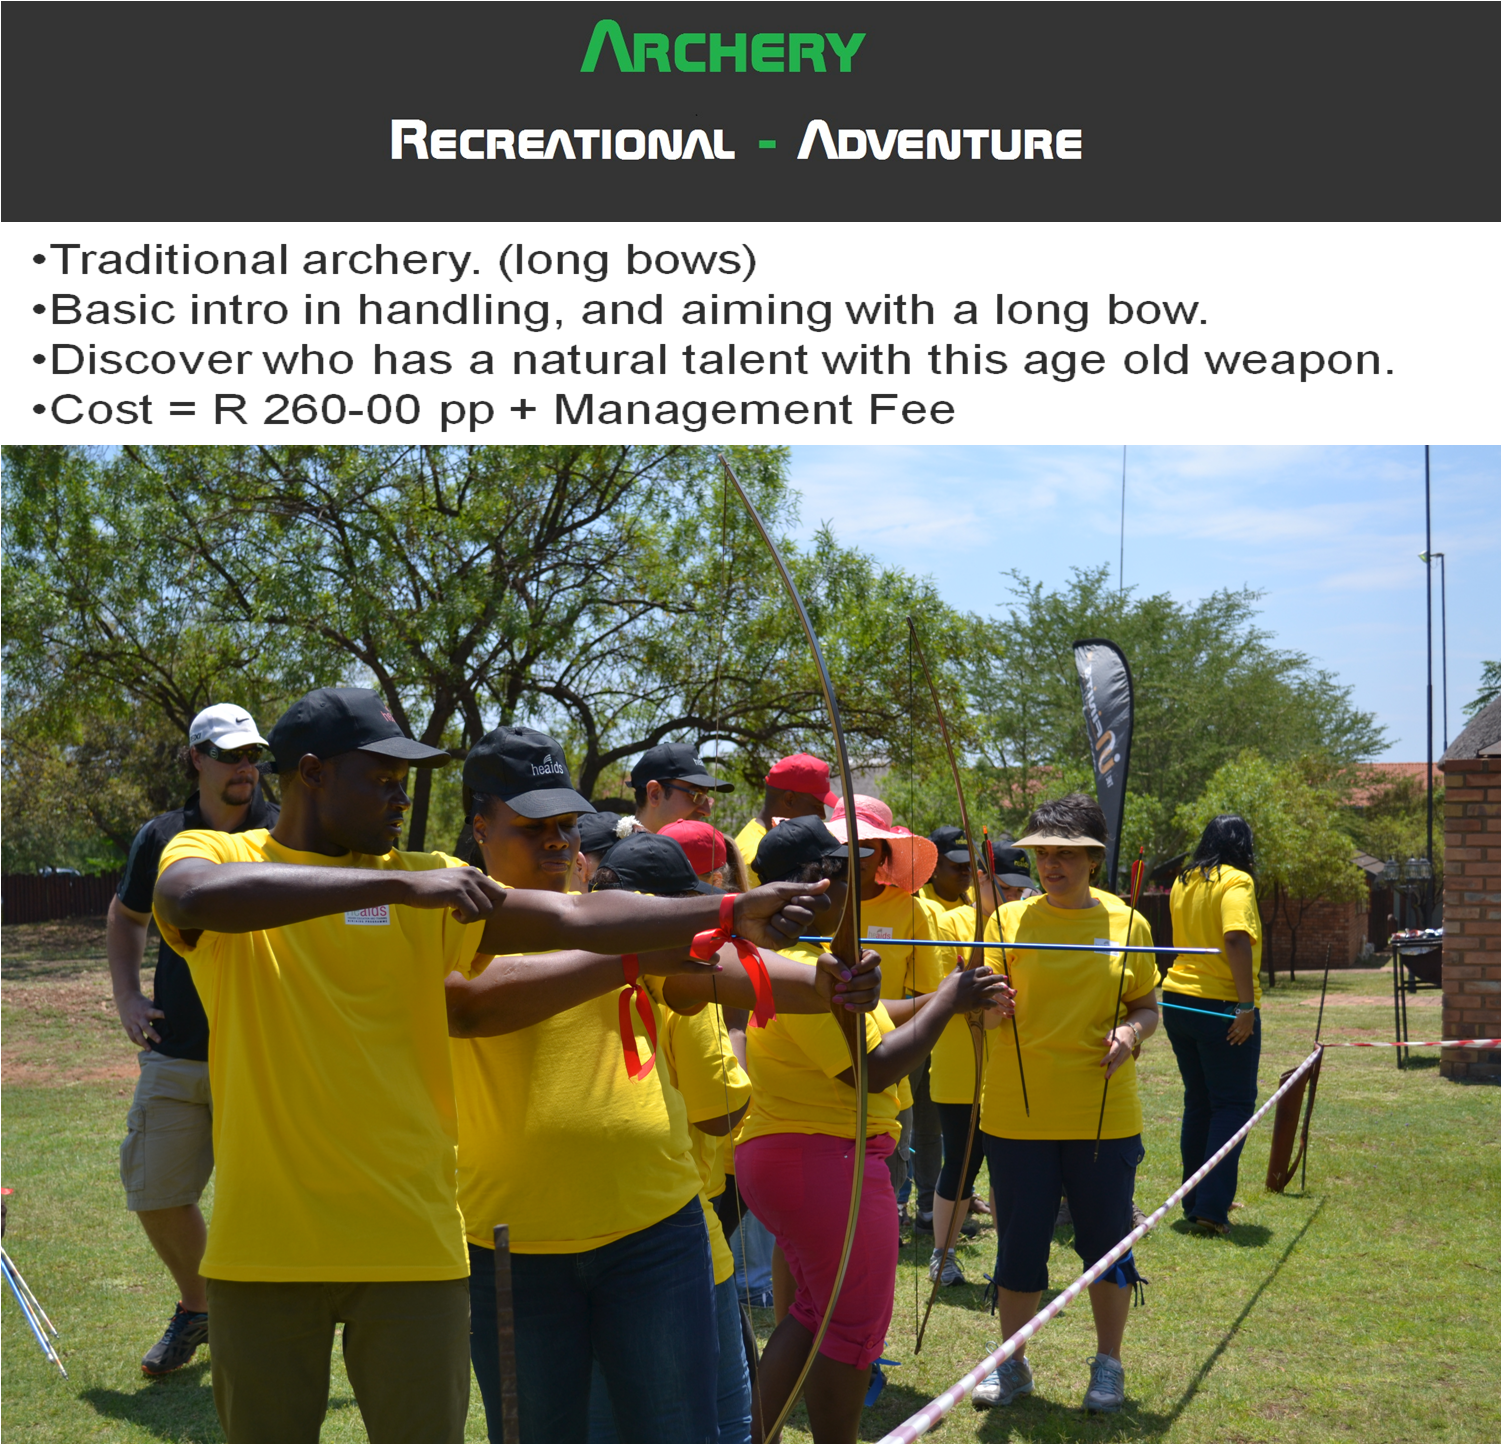 Archery in Pretoria